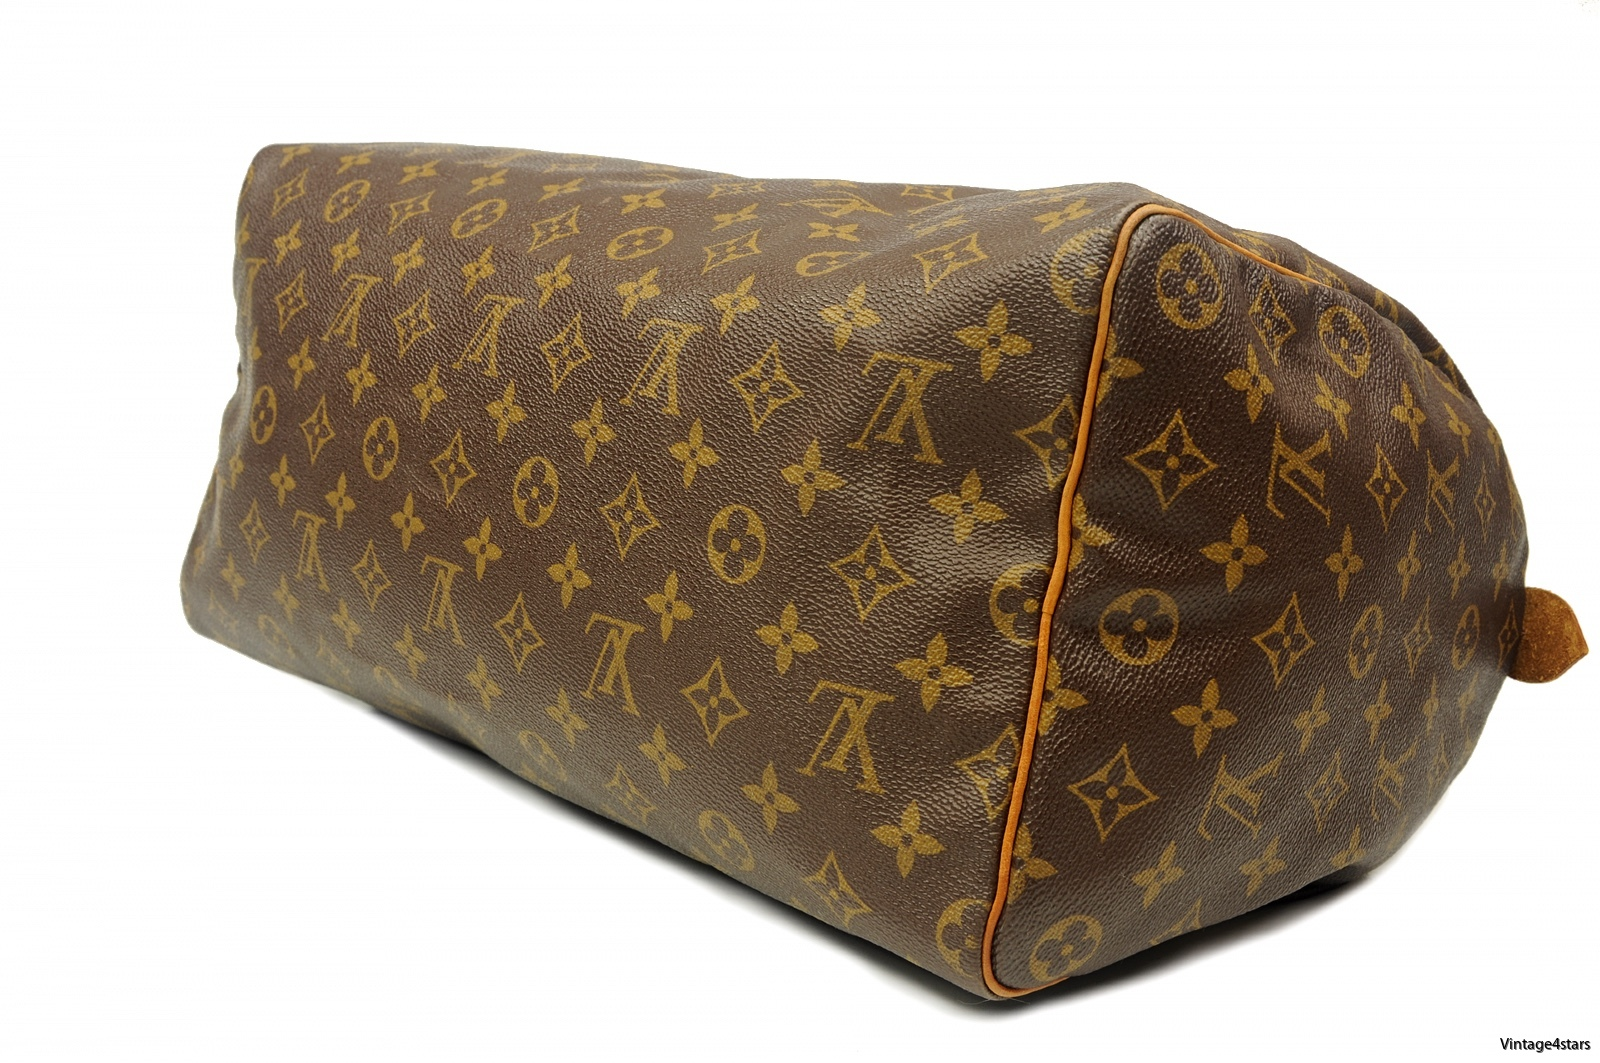 LOUIS VUITTON SPEEDY 40 4